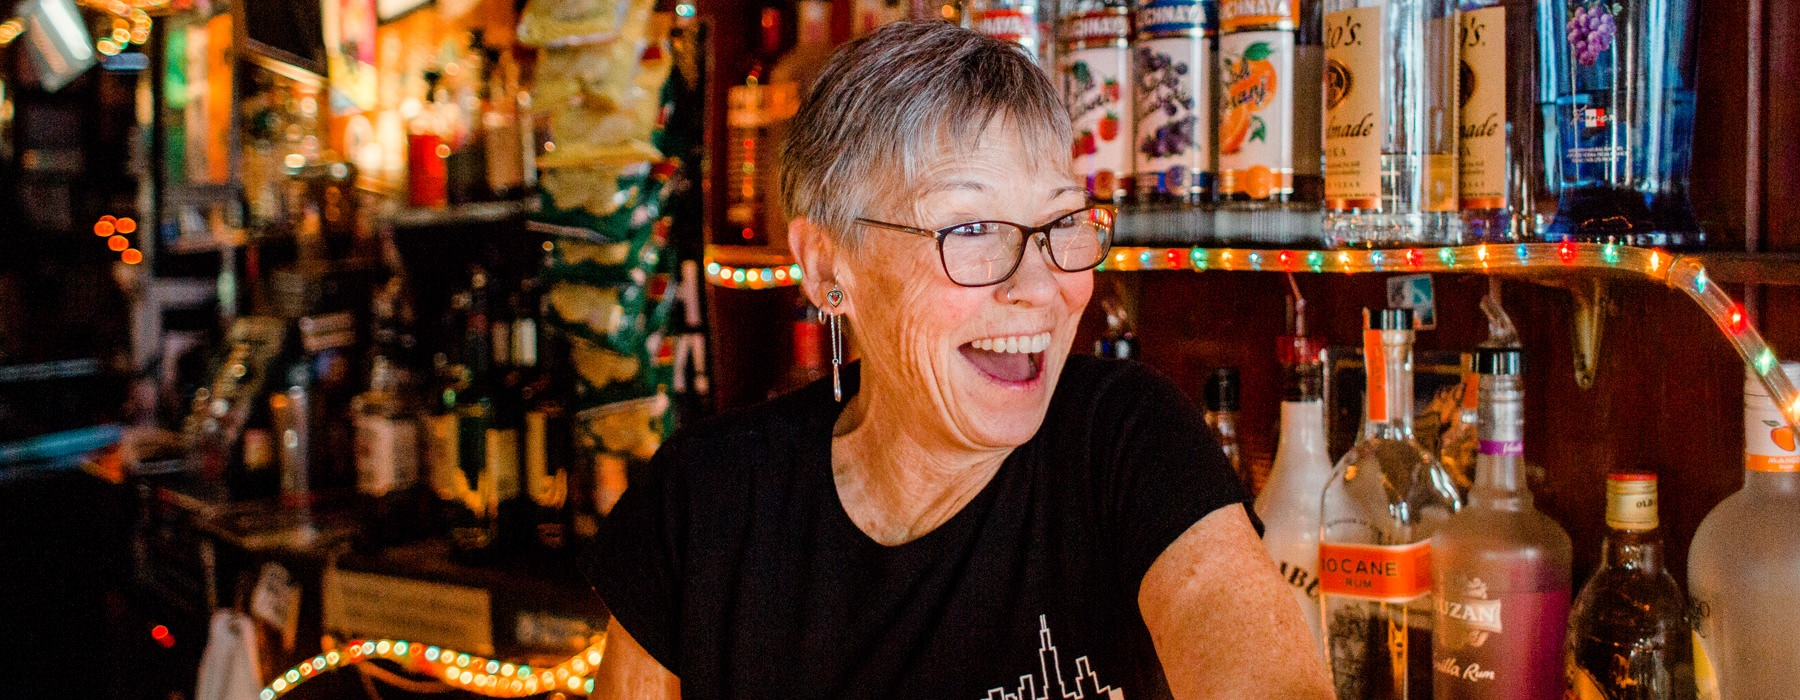 bartender smiling at customers from behind the bar